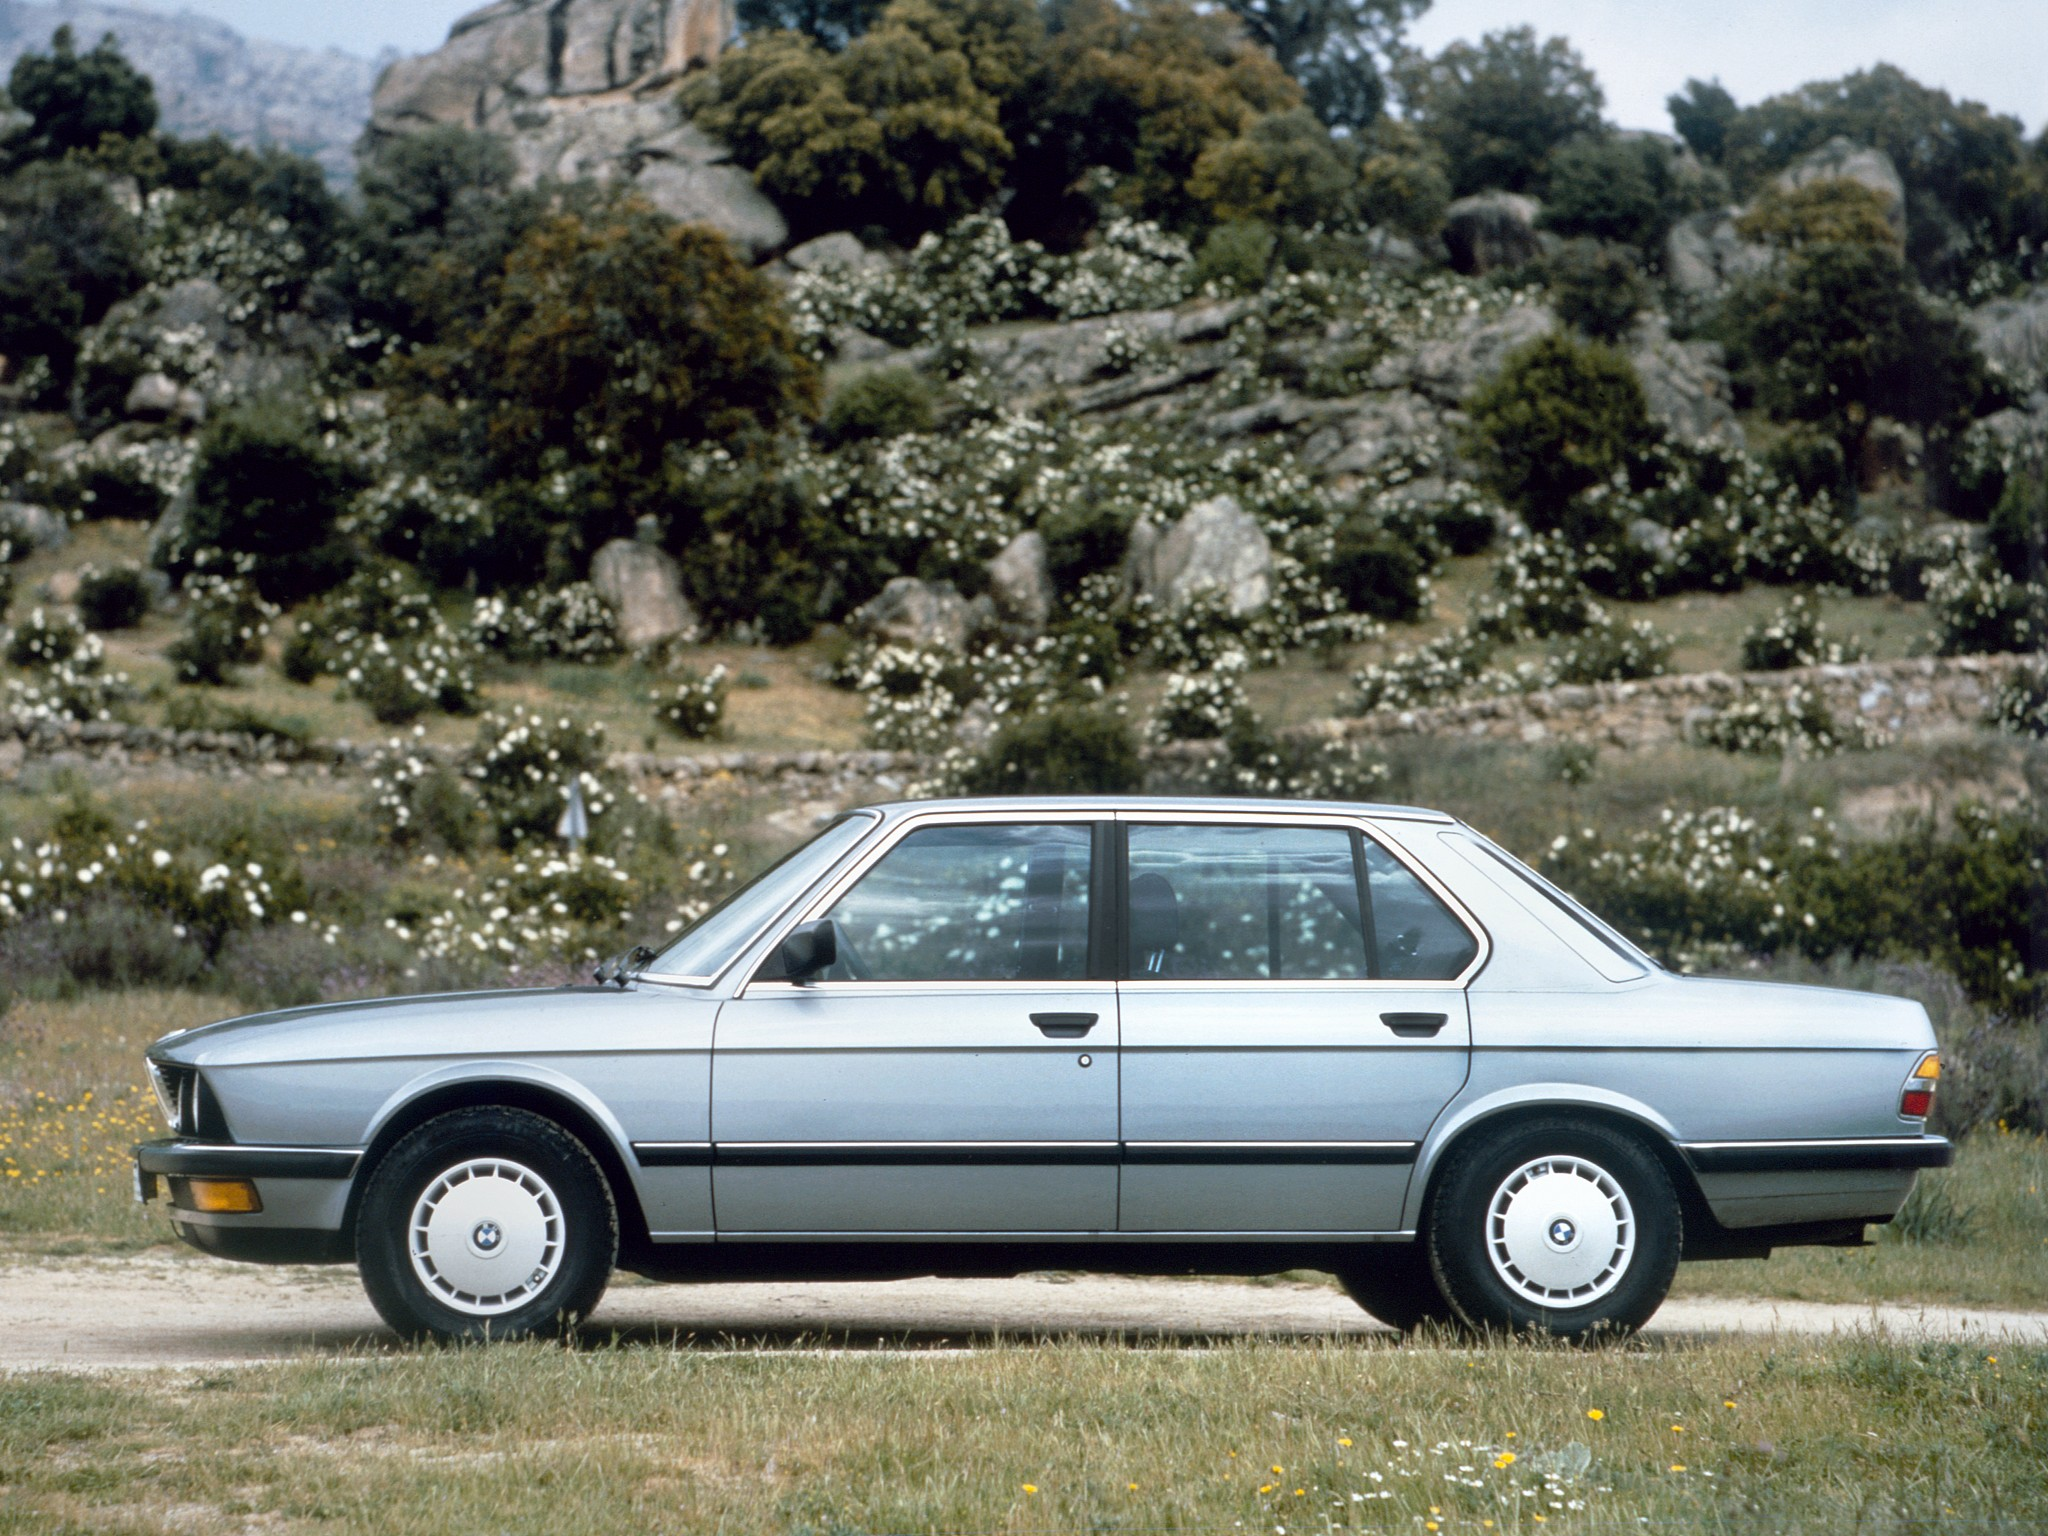 BMW 5 series 524td 1988 photo - 4